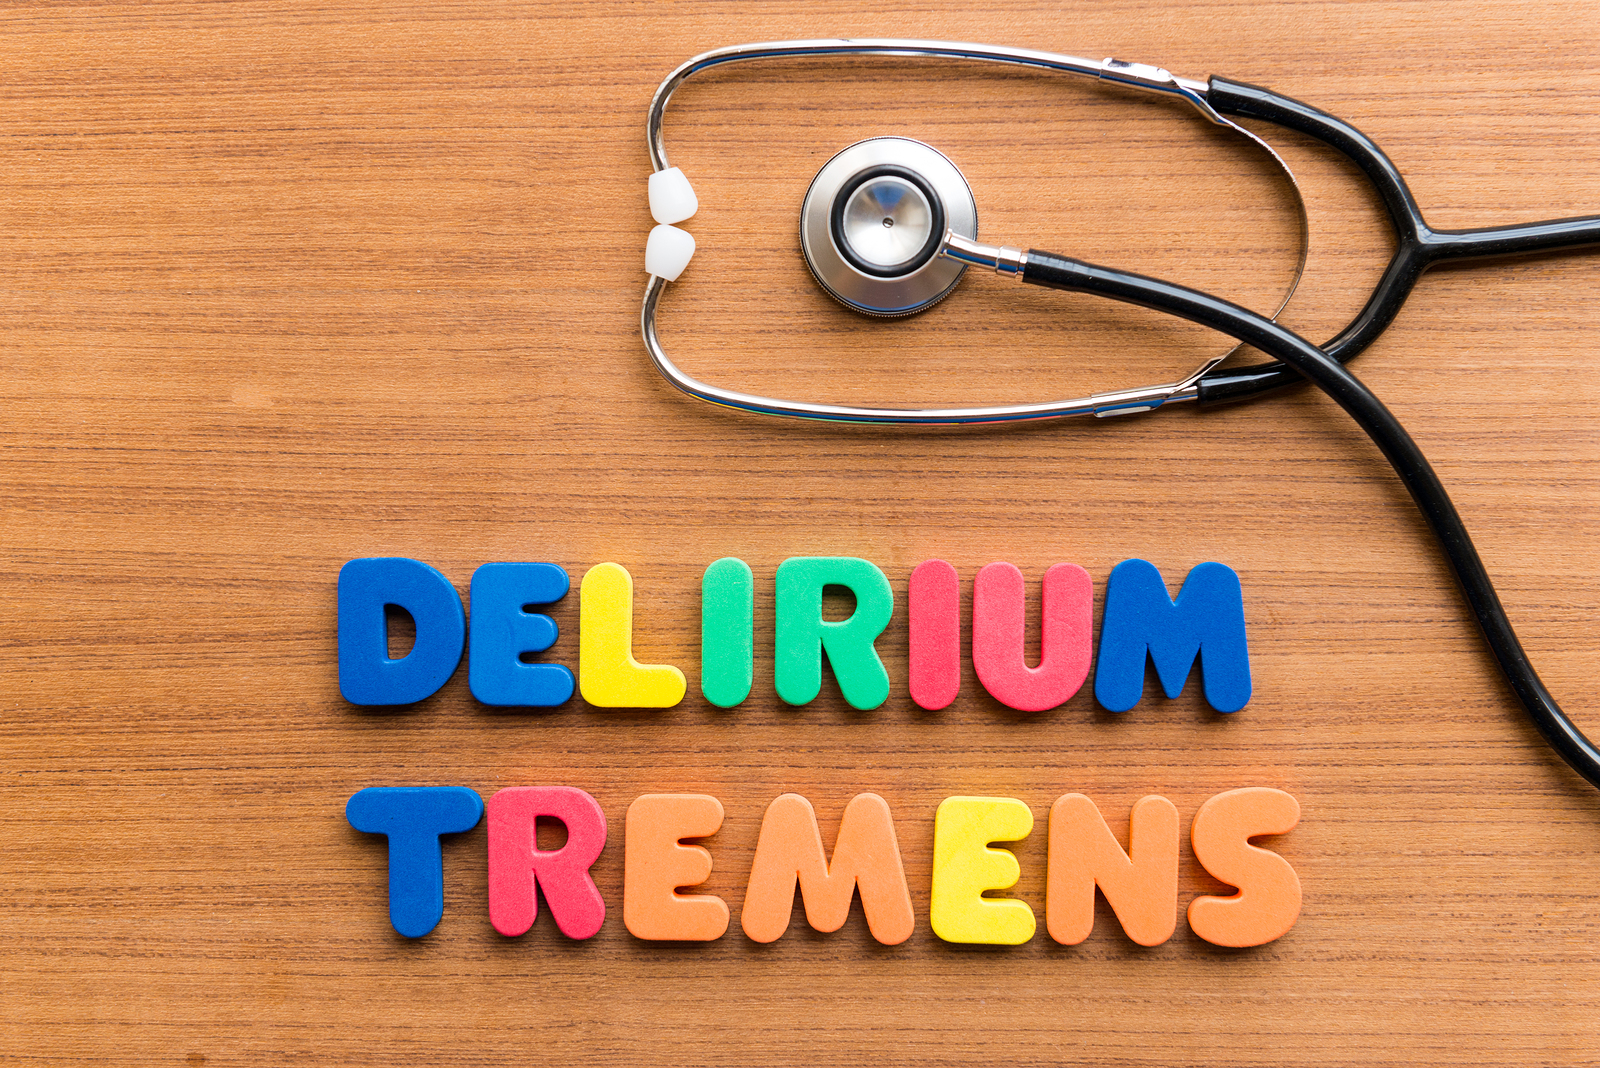 Delirium Tremens and Marijuana Information: Treat Delirium Tremens With Cannabis